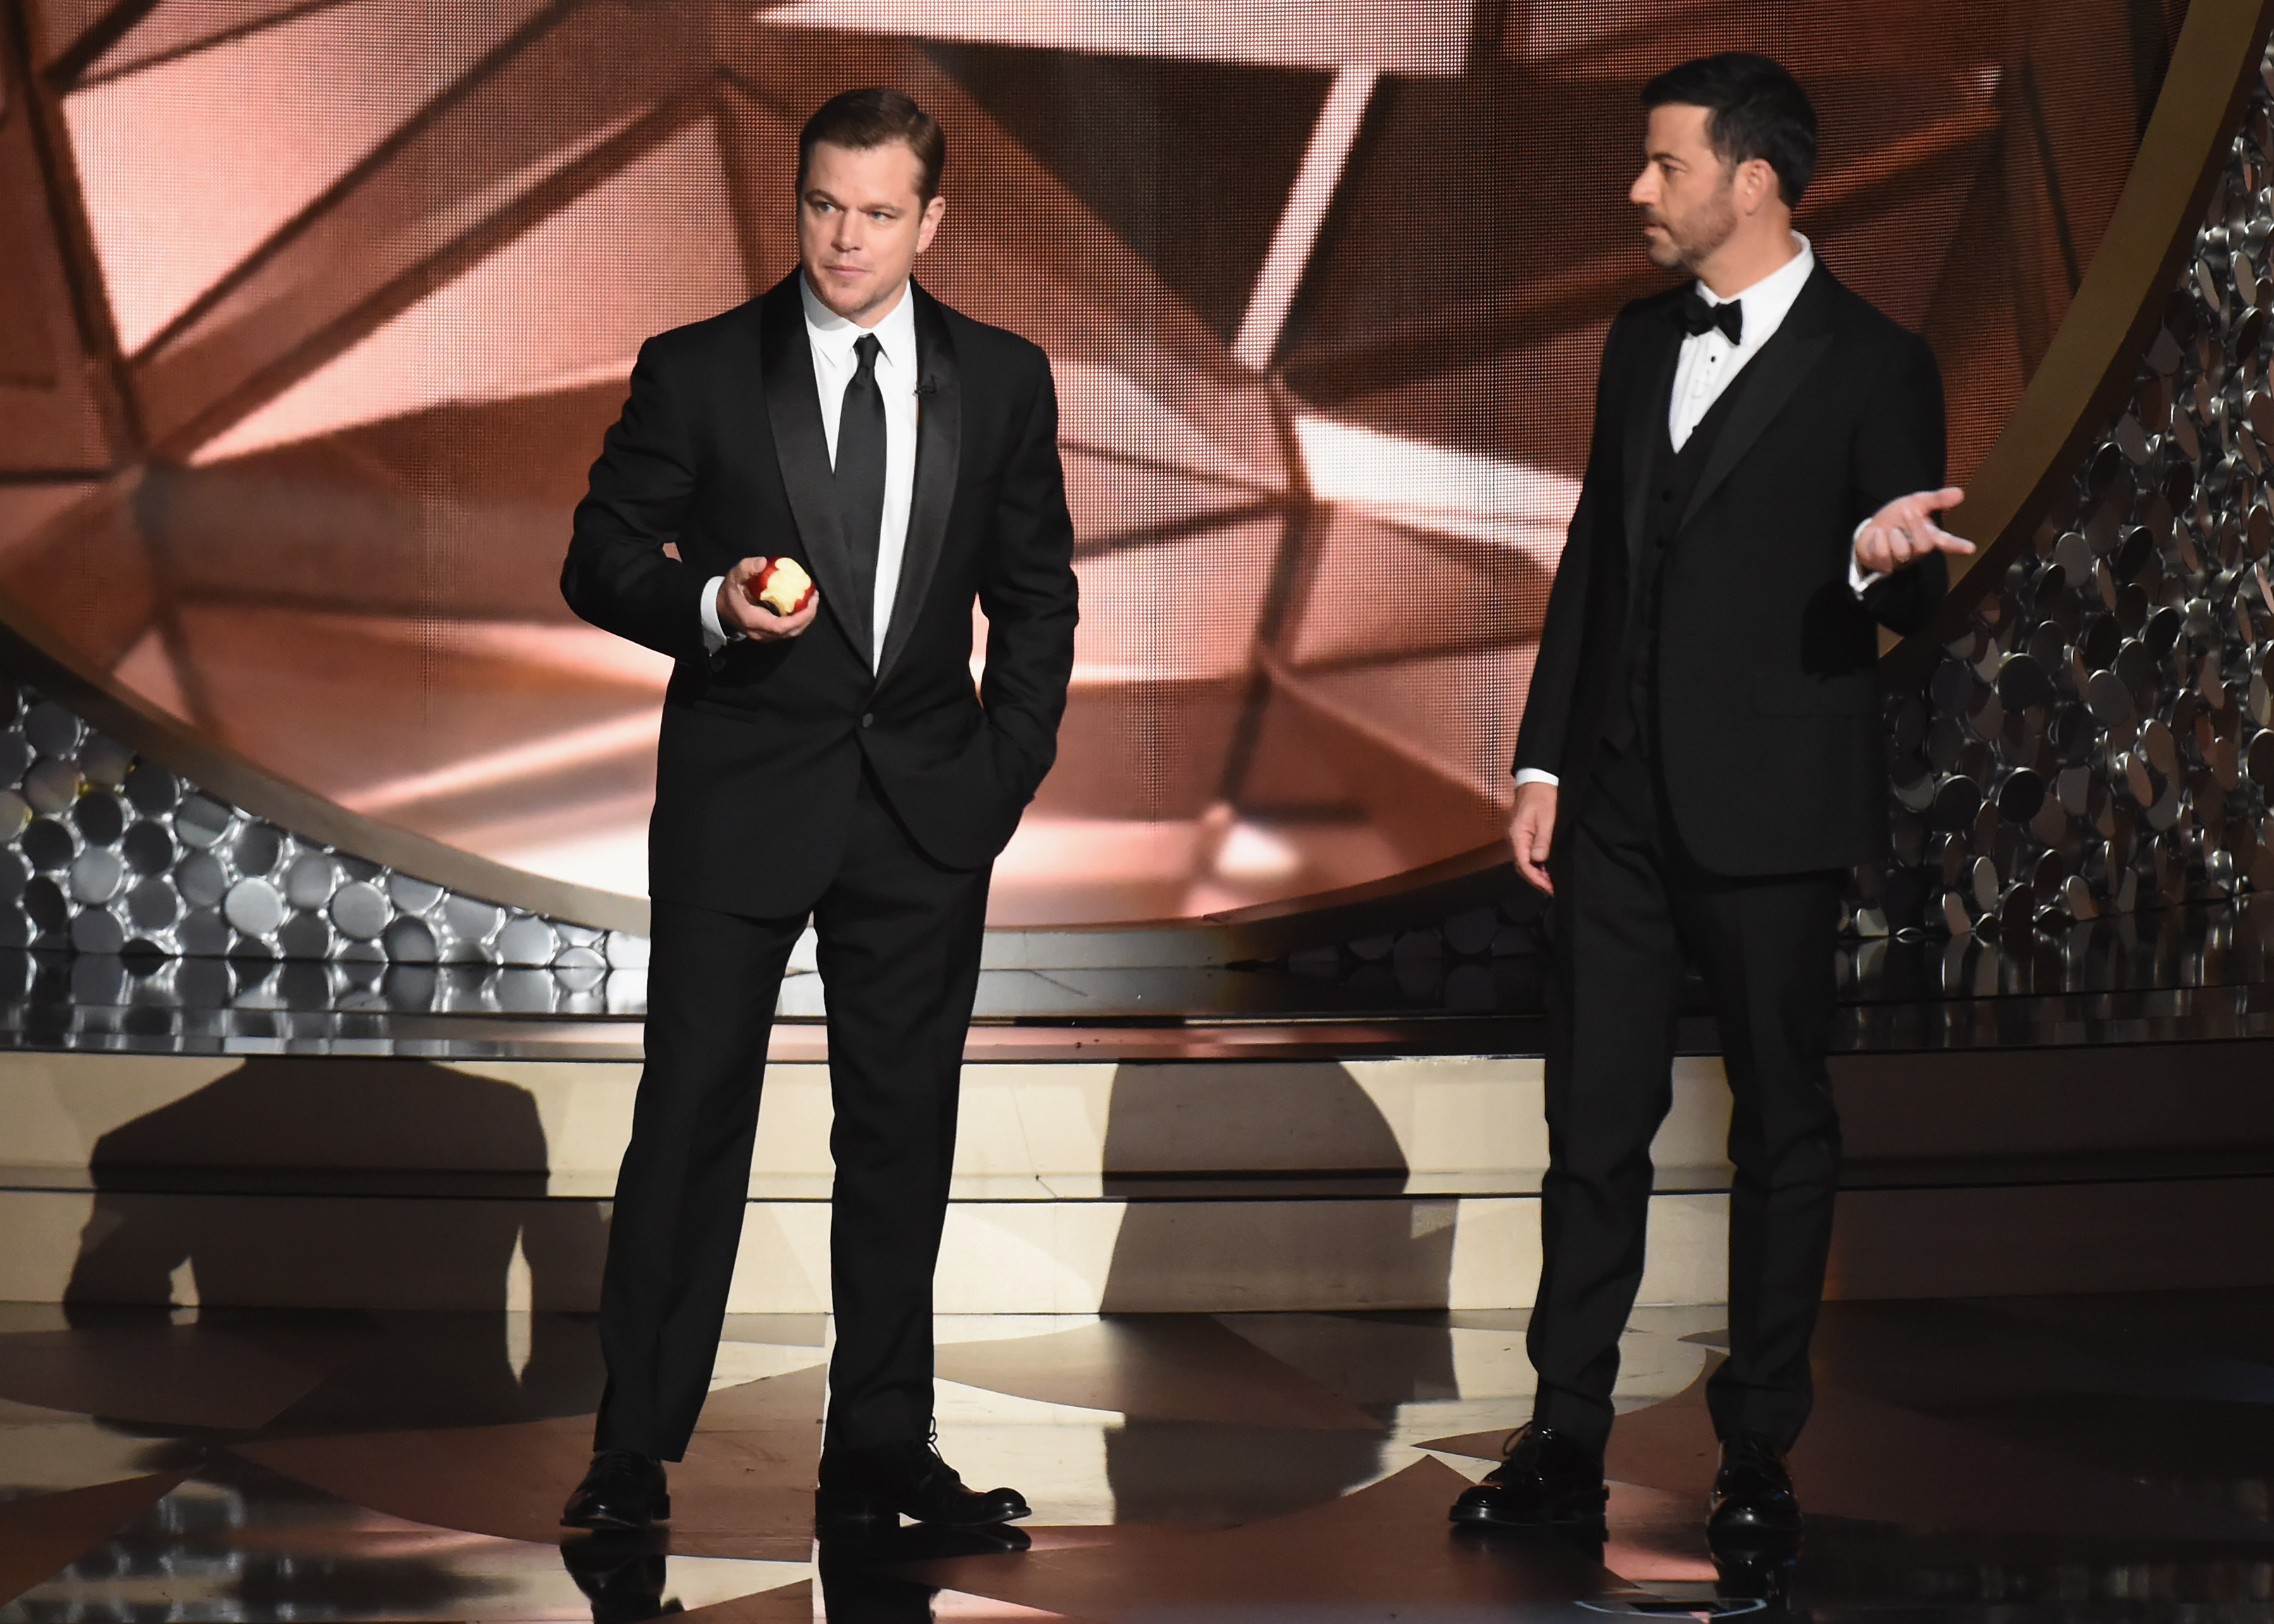 Actor Matt Damon (L) and host Jimmy Kimmel speak onstage during the 68th Annual Primetime Emmy Awards at Microsoft Theater on September 18, 2016 in Los Angeles, California.